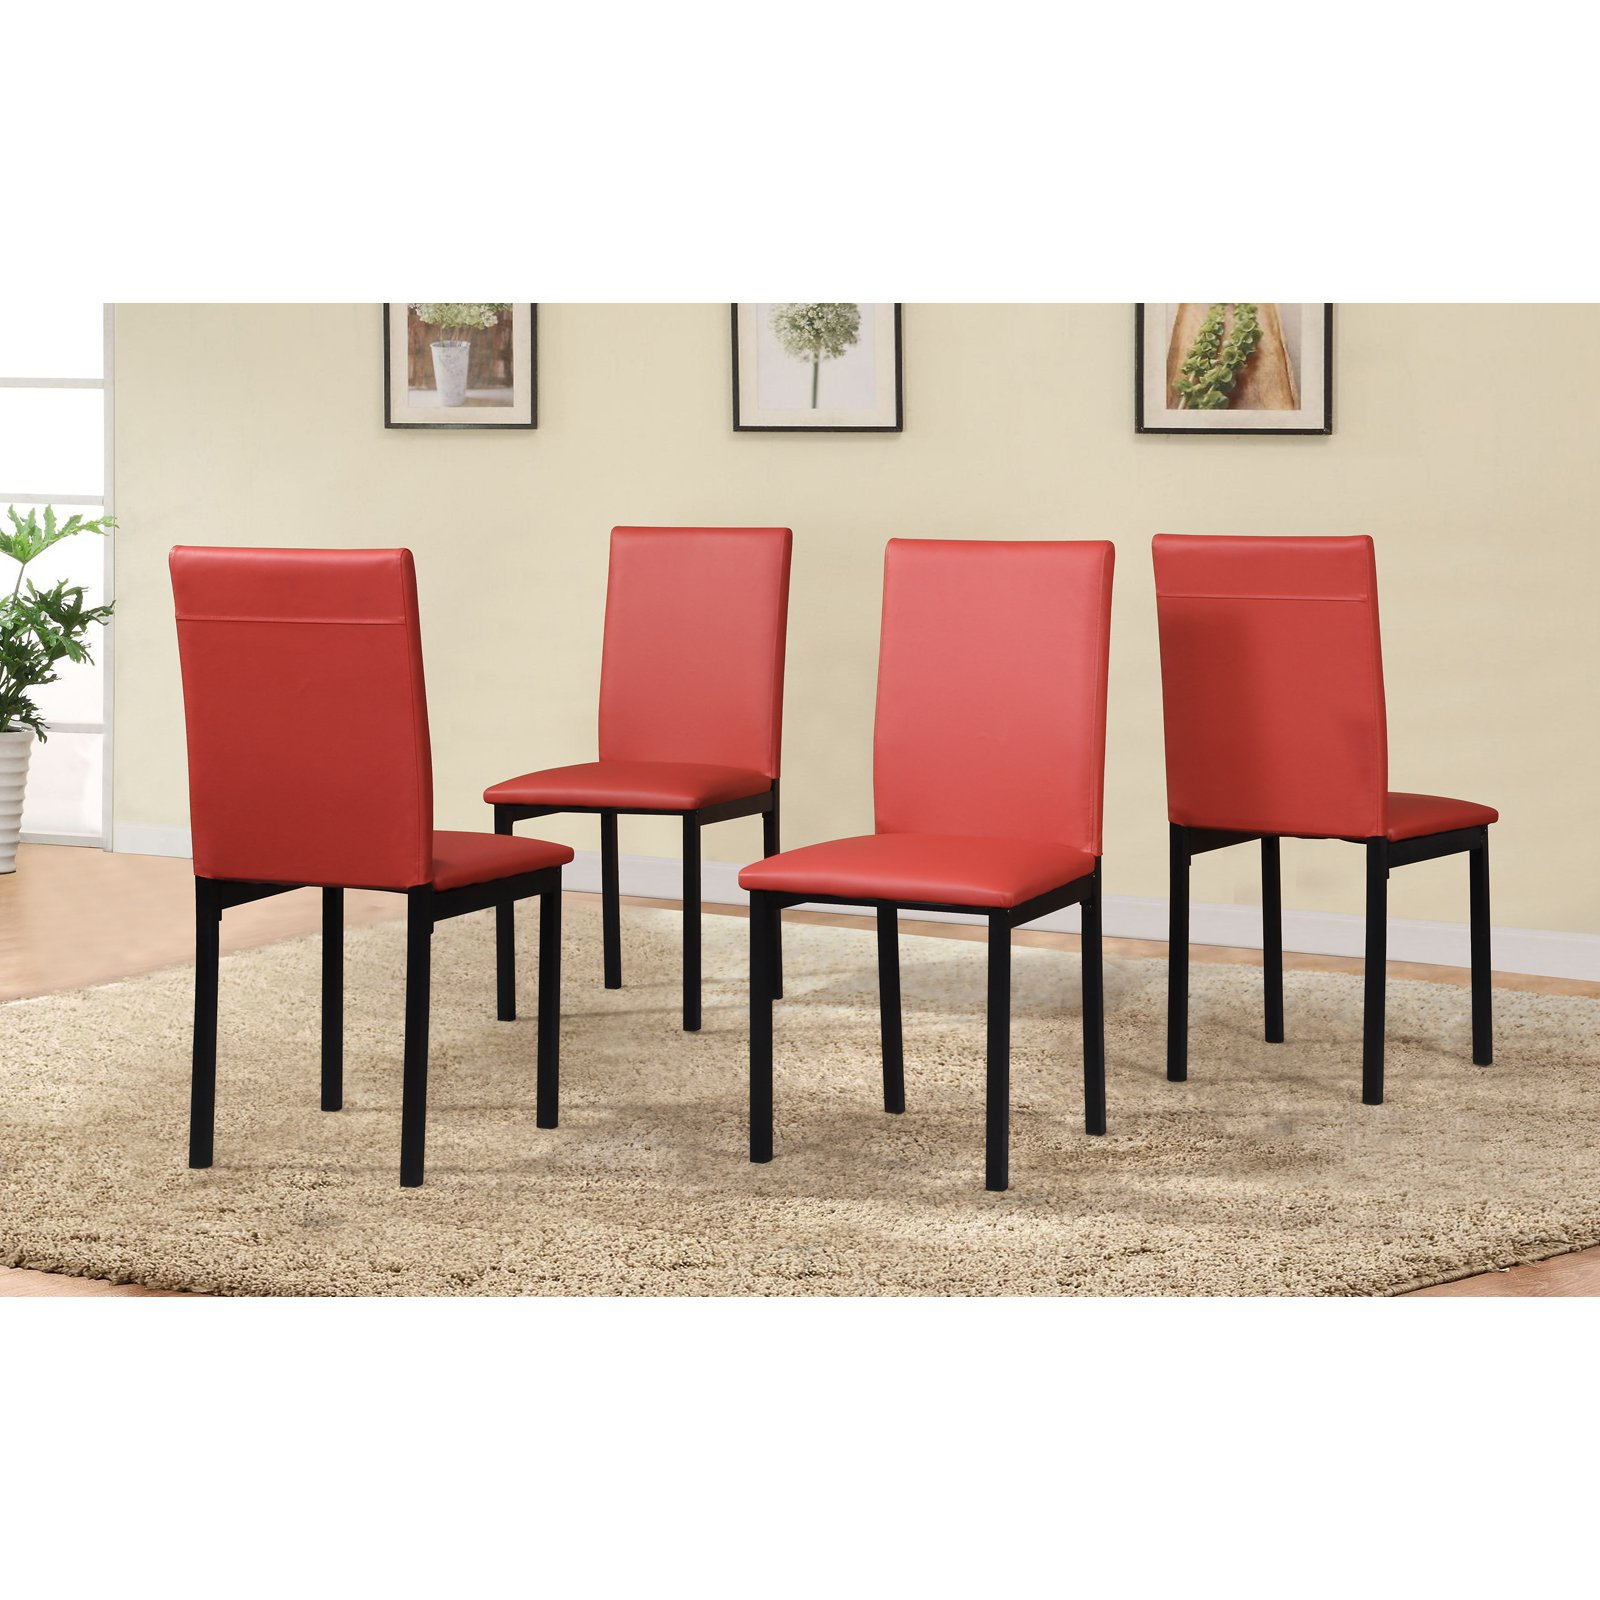 Roundhill Furniture Noyes Faux Leather Dining Side Chair – Set Of 4 With Regard To 2017 Noyes 5 Piece Dining Sets (View 11 of 20)